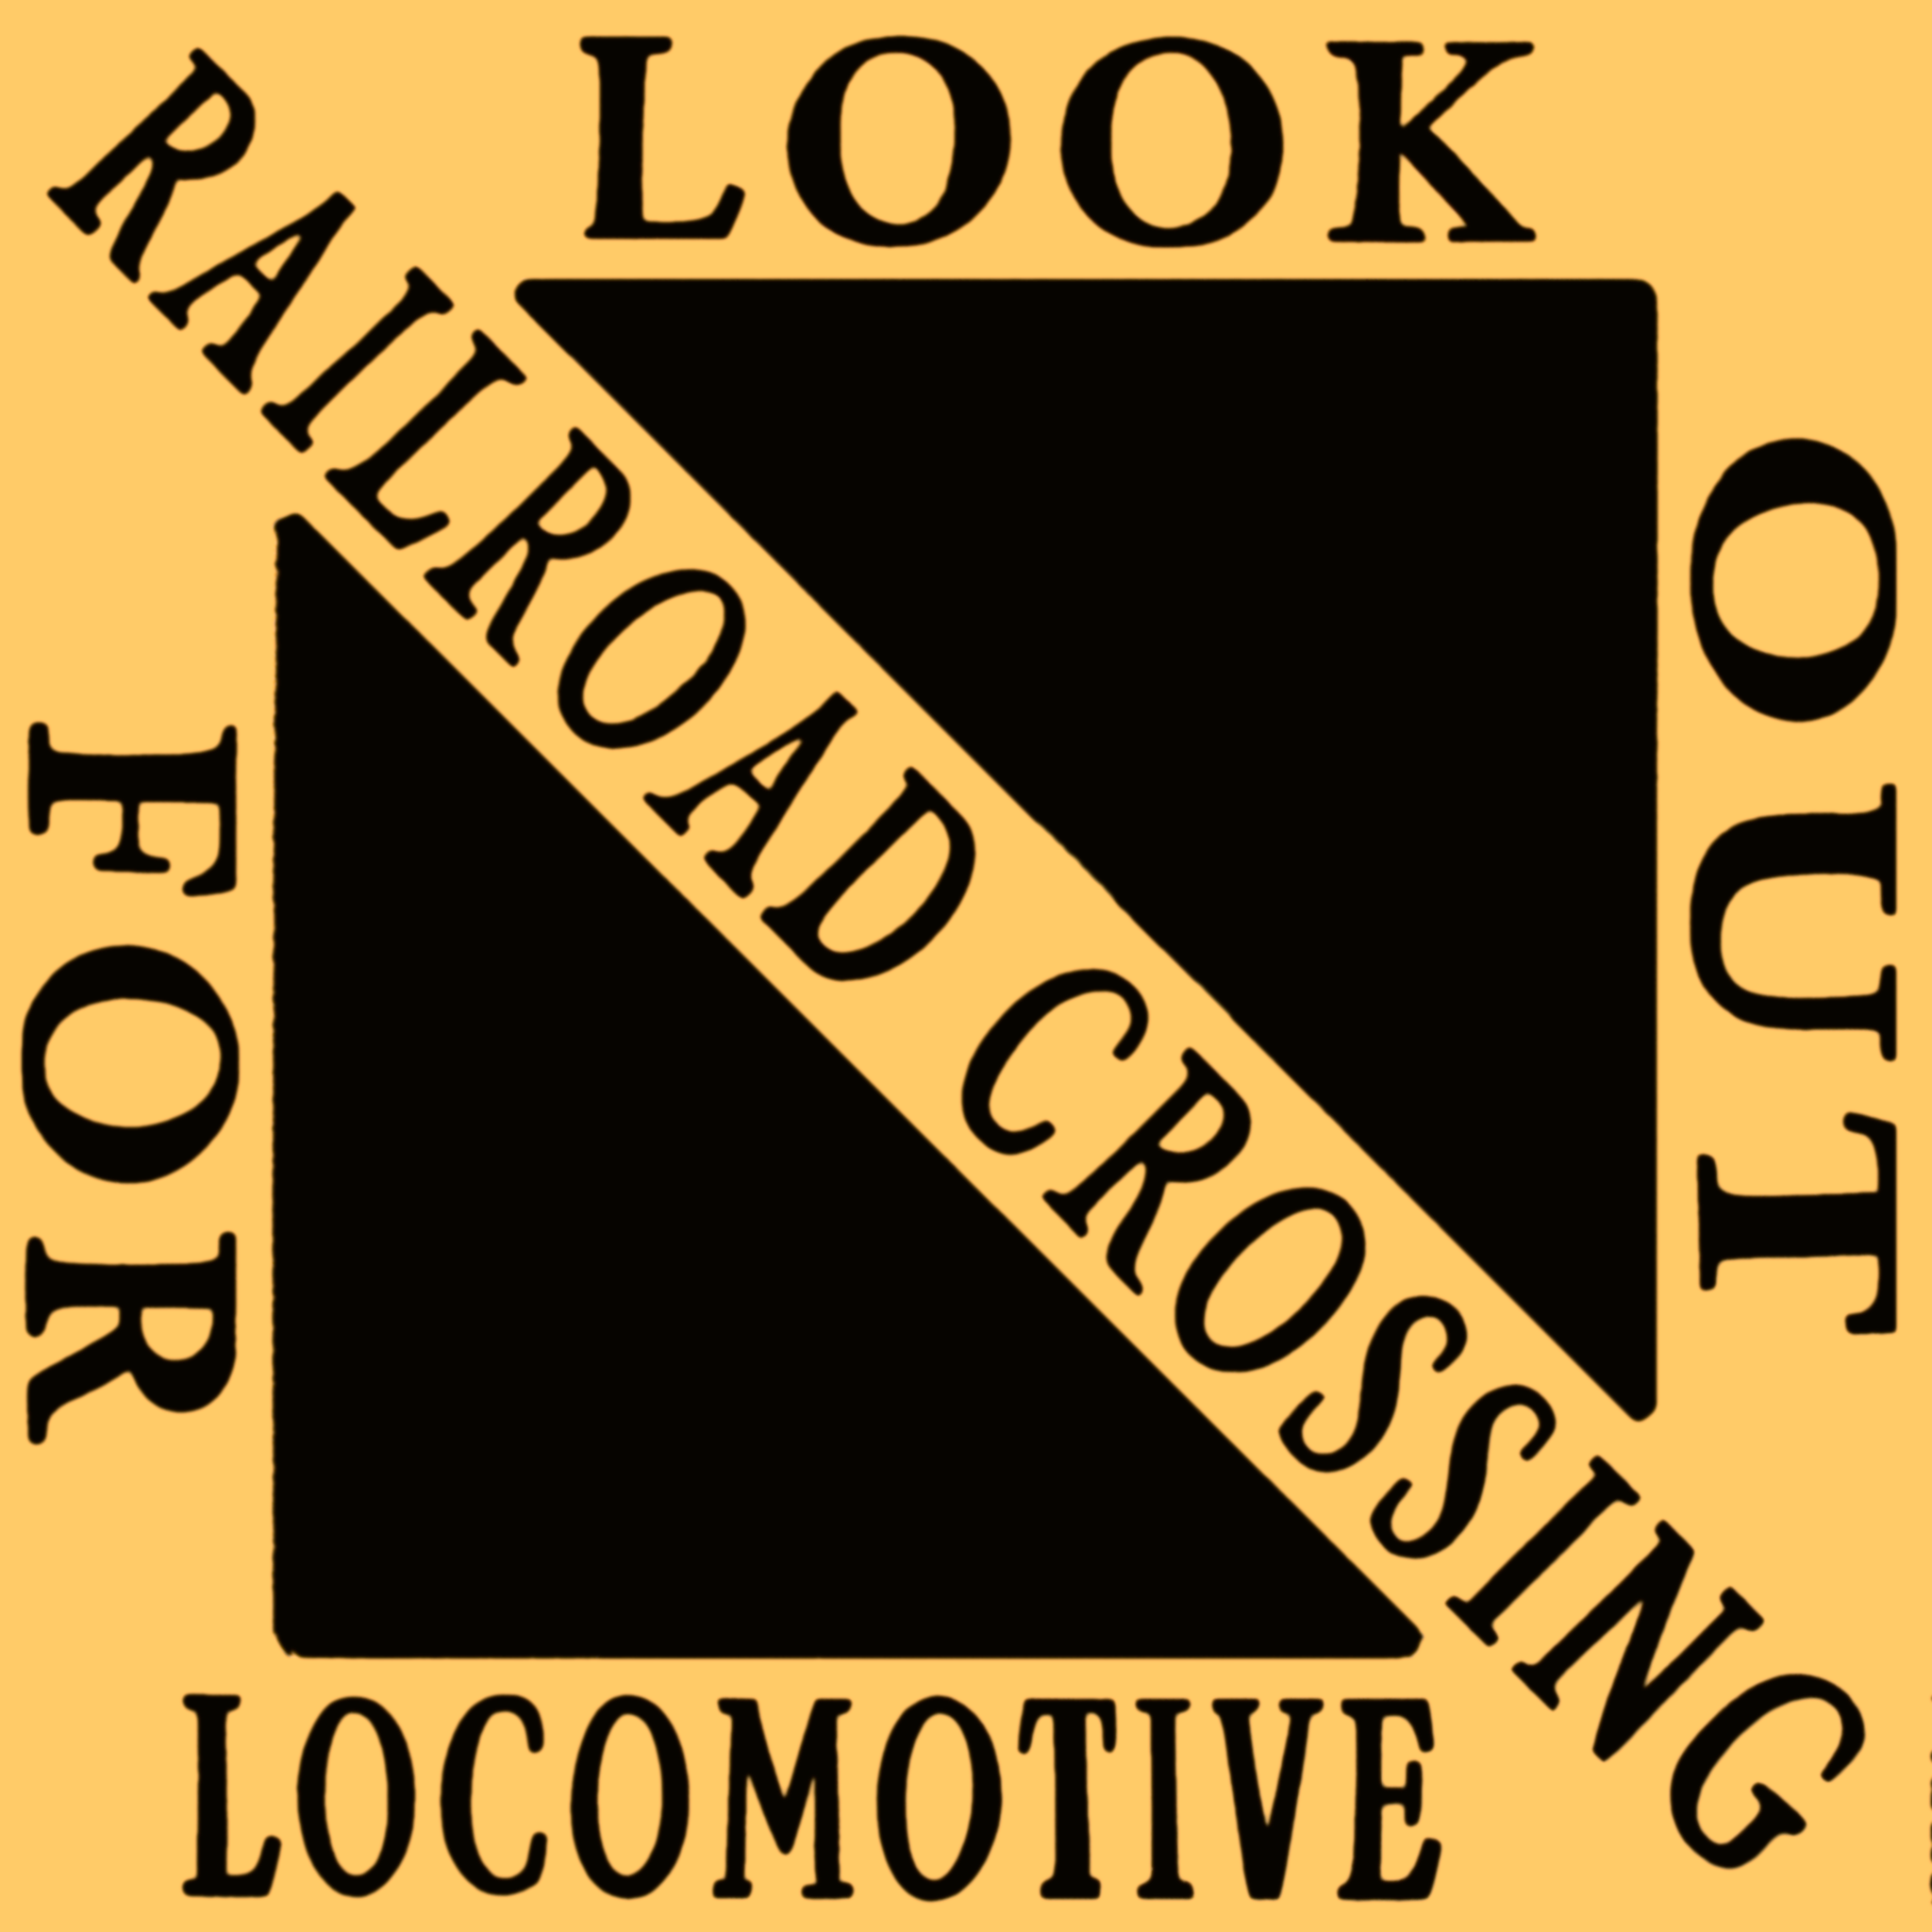 Look For Locomotive.png